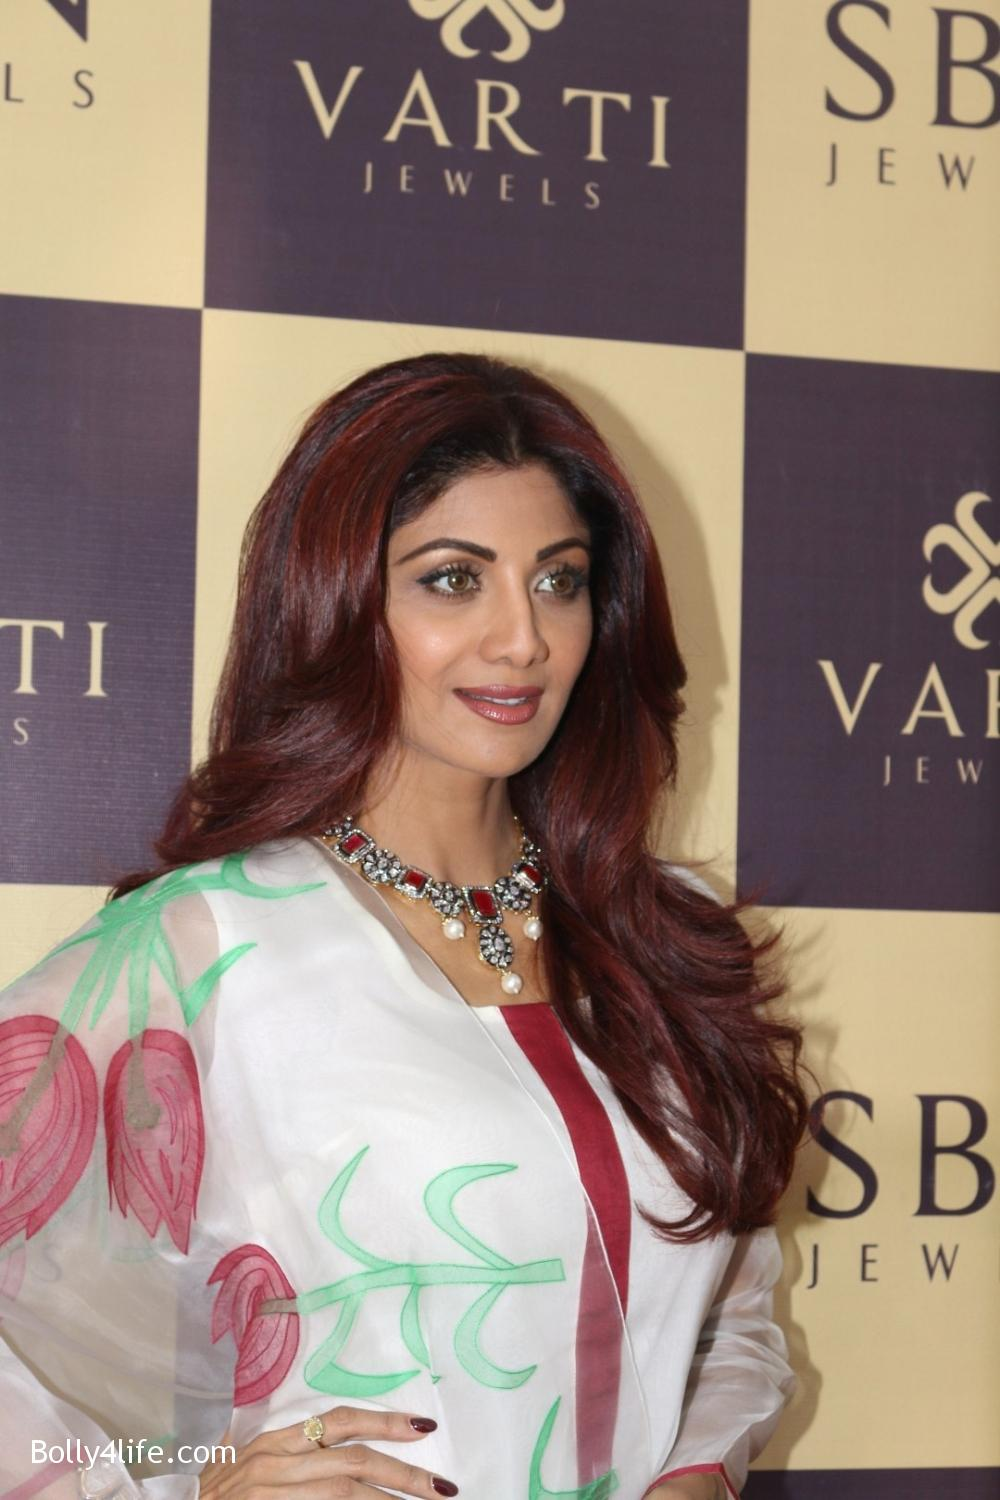 Shilpa-Shetty-inaugurates-jewellery-showroom-of-Varti-Jewells-11.jpg